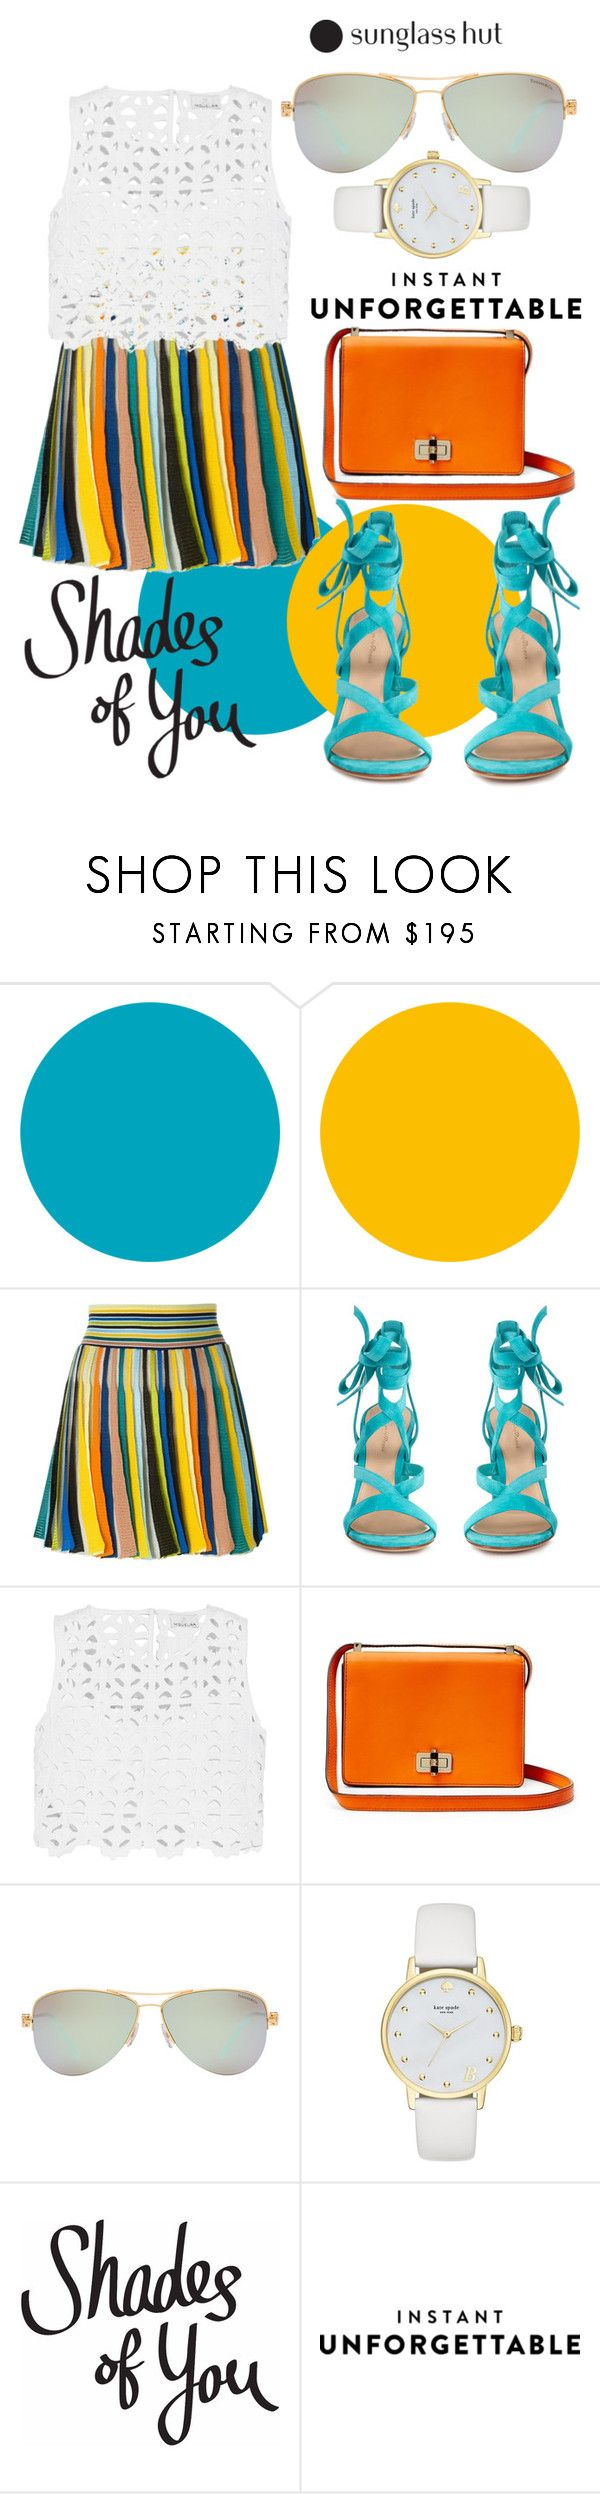 """Shades of You: Sunglass Hut Contest Entry"" by paulinako on Polyvore featuring moda, Missoni, Gianvito Rossi, Miguelina, Diane Von Furstenberg, Tiffany & Co., Kate Spade, sunglasshut, shadesofyou i instantunforgettable"